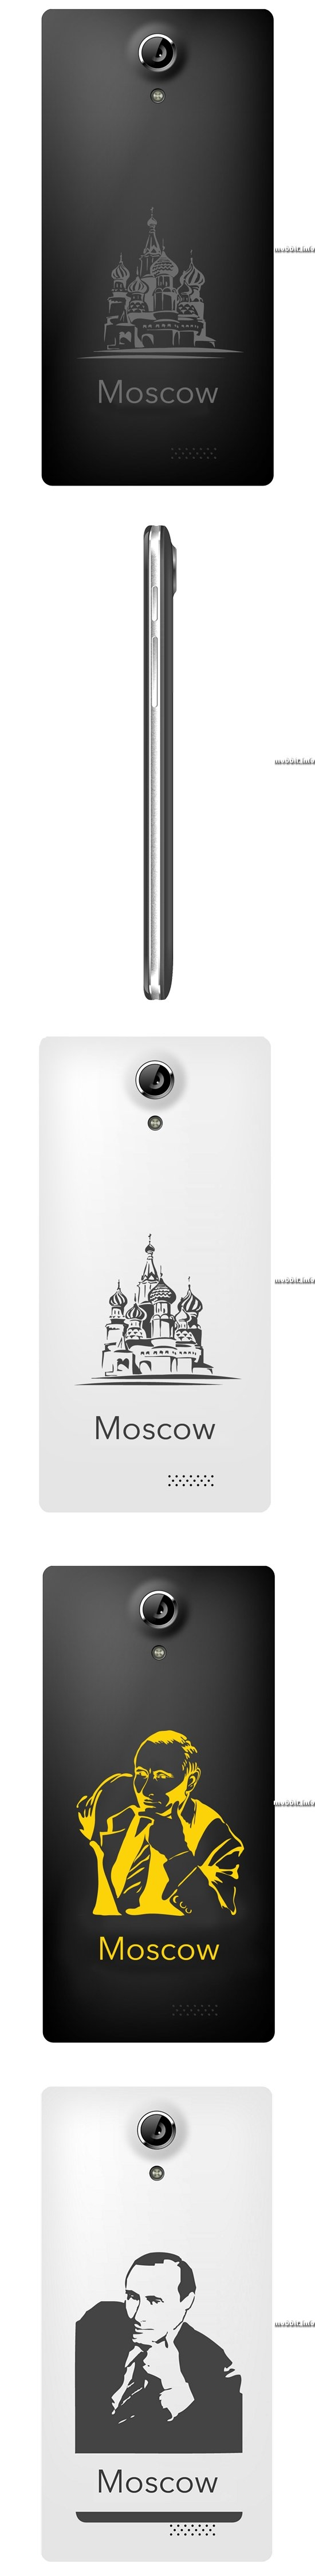 BQ Moscow